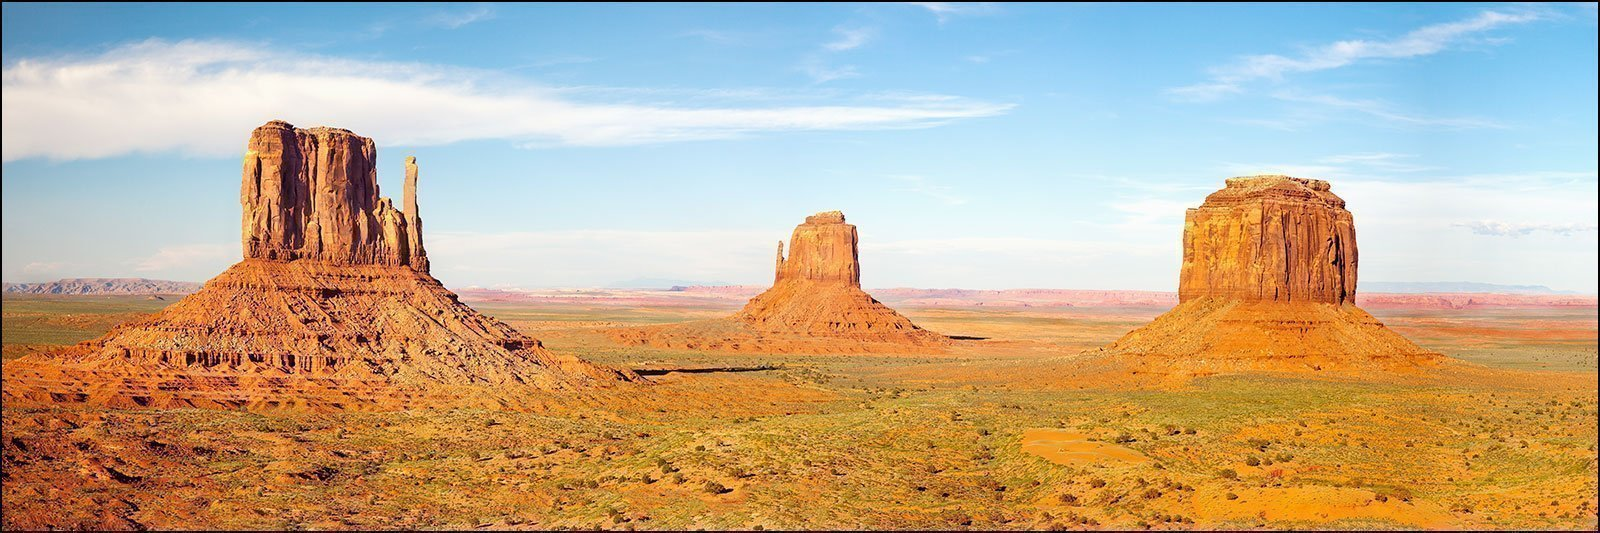 12 x 36 inch Panoramic art decor photograph of classic Southwest red buttes used in many movie westerns in Monument Valley, UT.